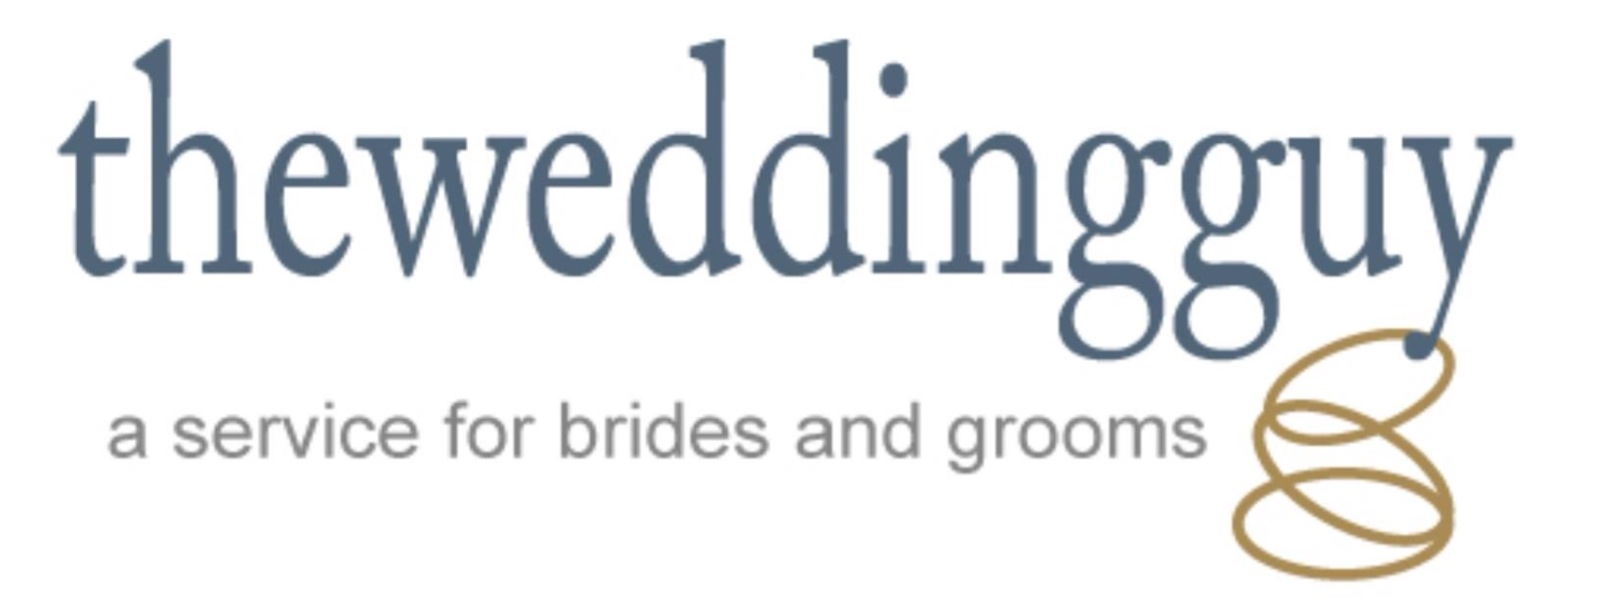 Create Your Own Wedding Rings, Friendship Rings, Wedding Gifts, Bridesmaids Jewellery, The School Of Jewellery